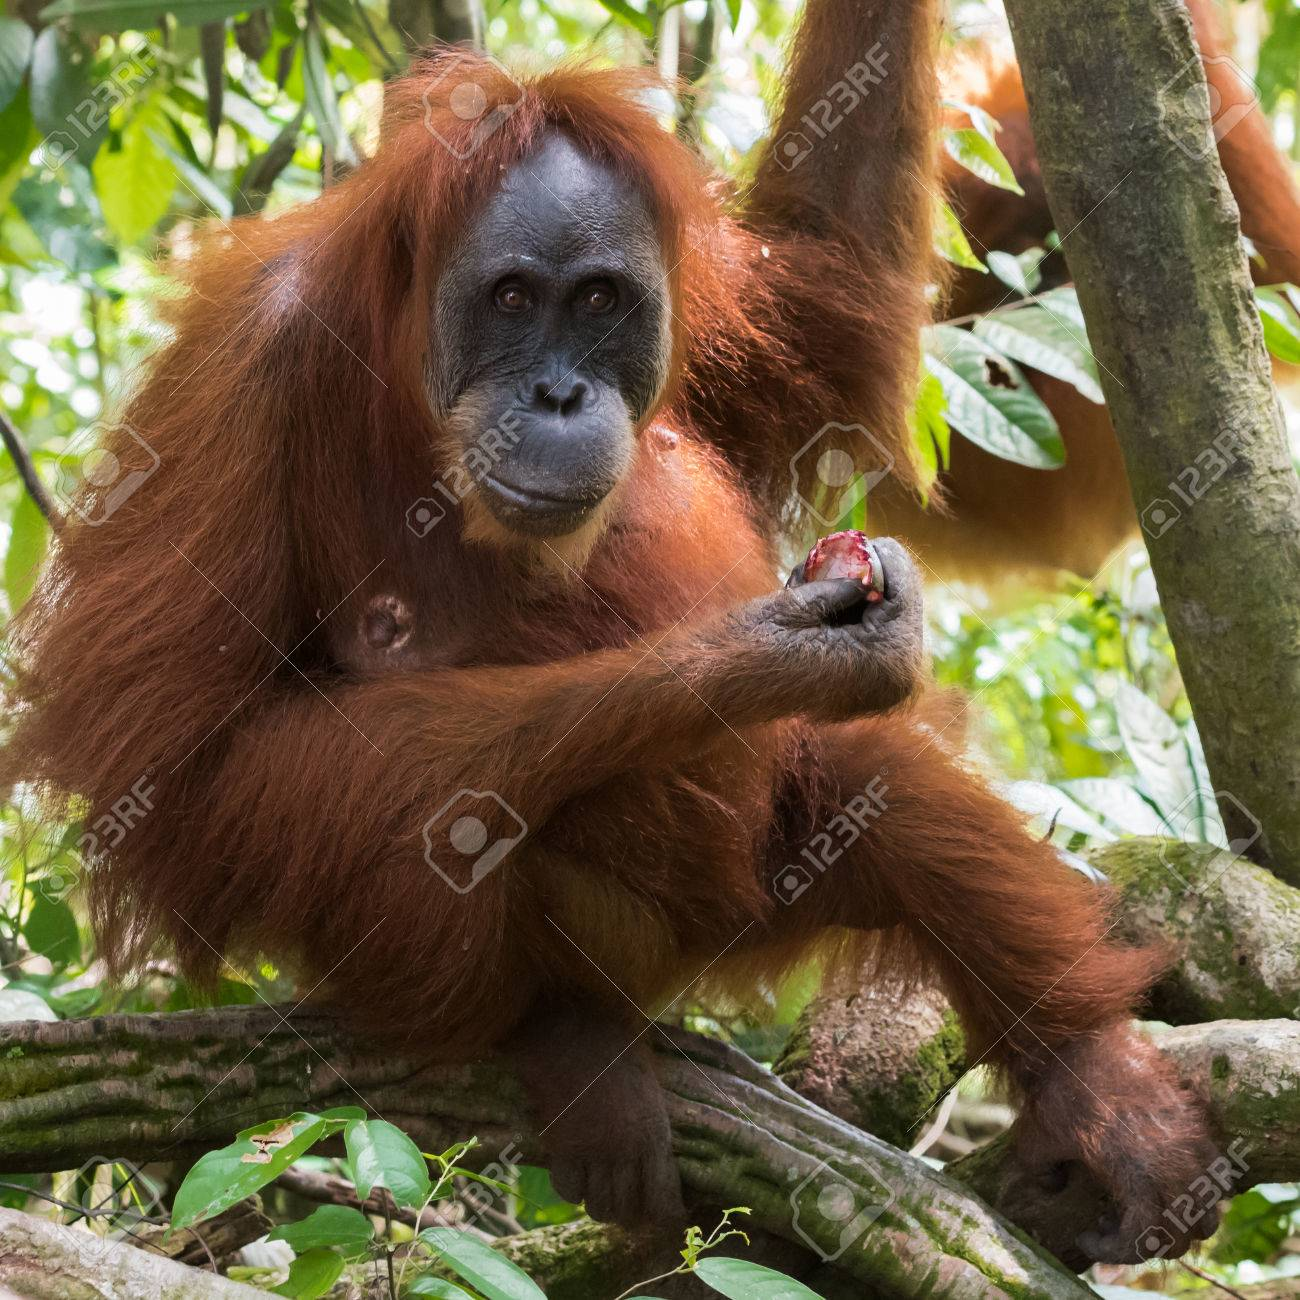 Adult Hairy Orangutan Dine And Hang On The Branches On The 1300x1300